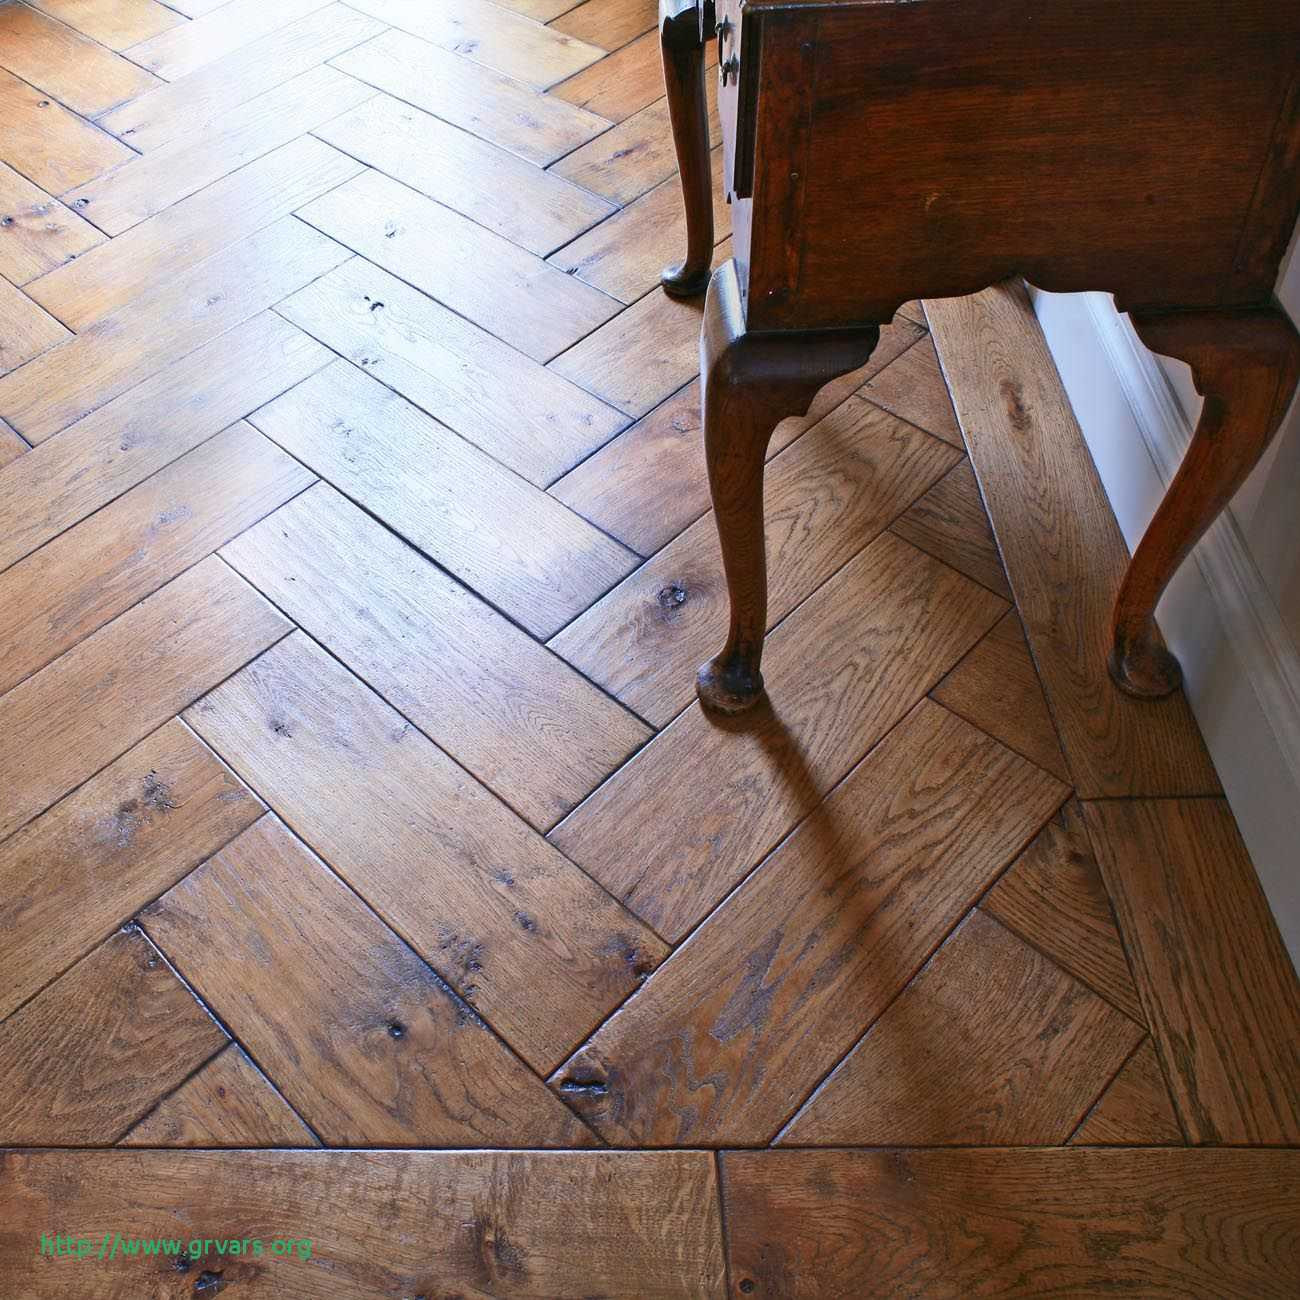 27 Elegant Discontinued Hardwood Flooring for Sale 2021 free download discontinued hardwood flooring for sale of 20 ac289lagant best place to purchase laminate flooring ideas blog throughout make them wonder another wood floor alternative intended for sizing 1